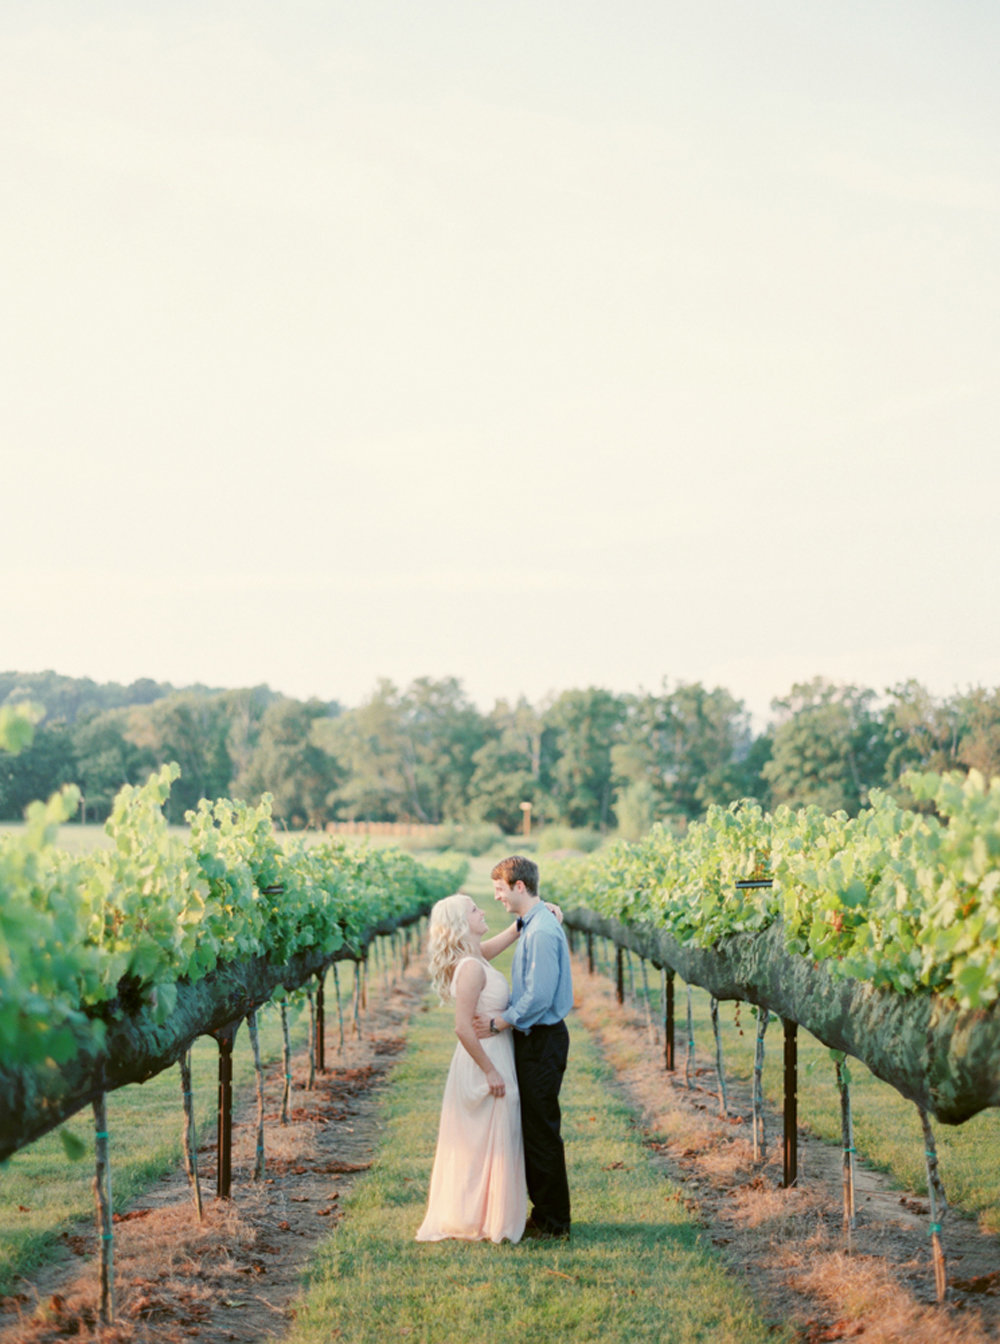 nashville-arrington-vineyard-engagement-session-39 copy